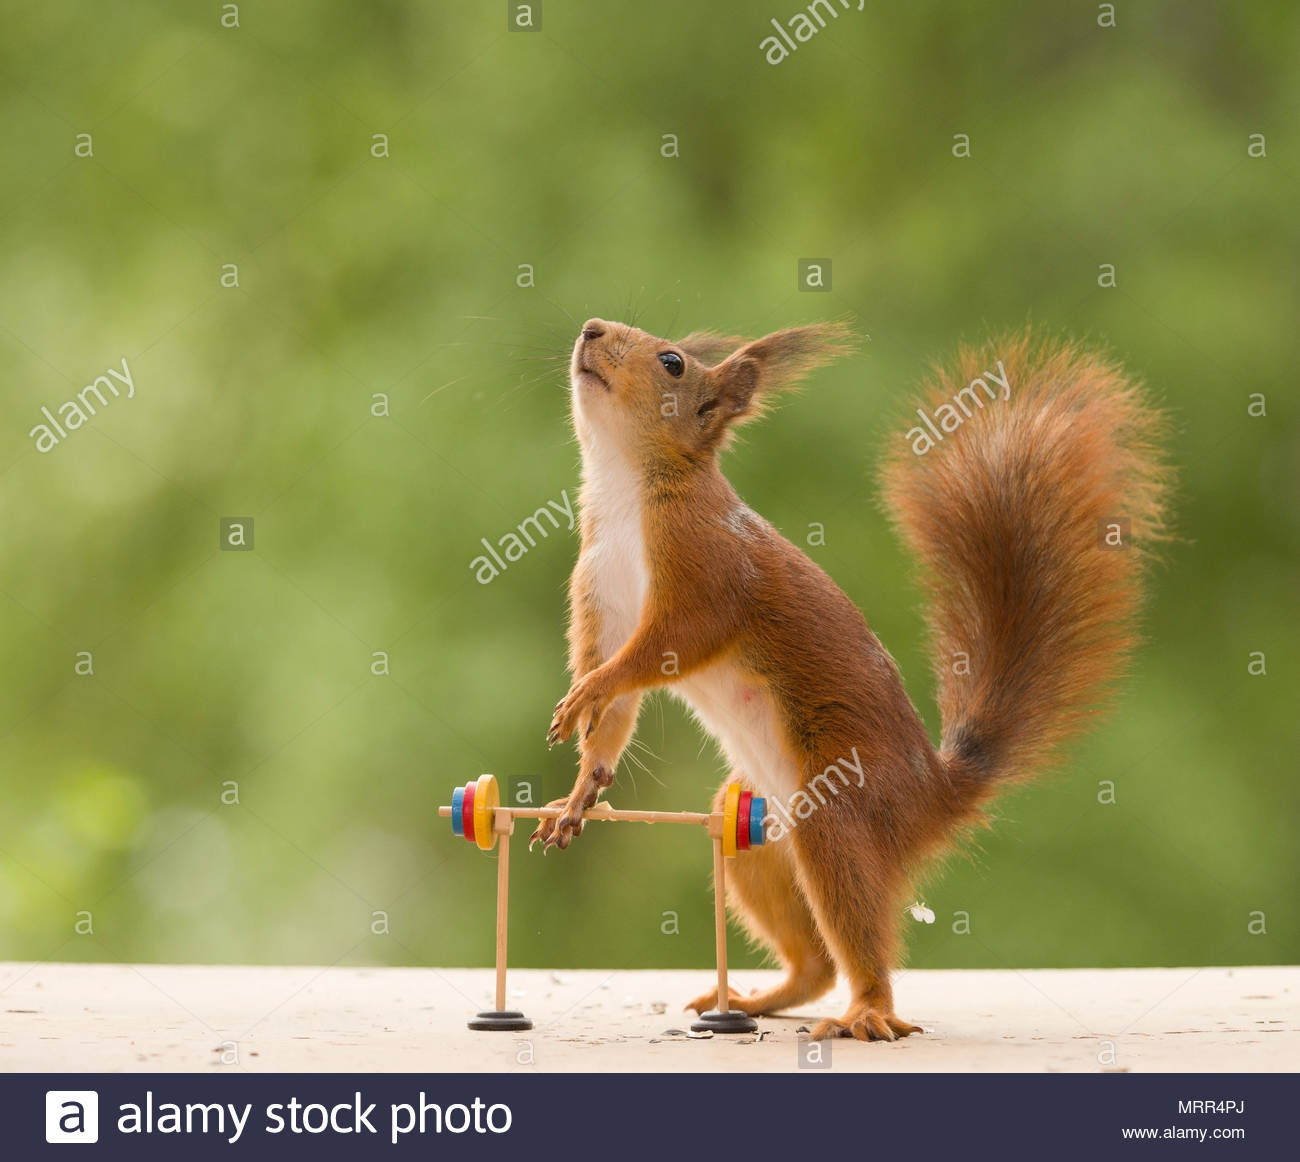 red squirrel is holding an Barbell - Stock Image